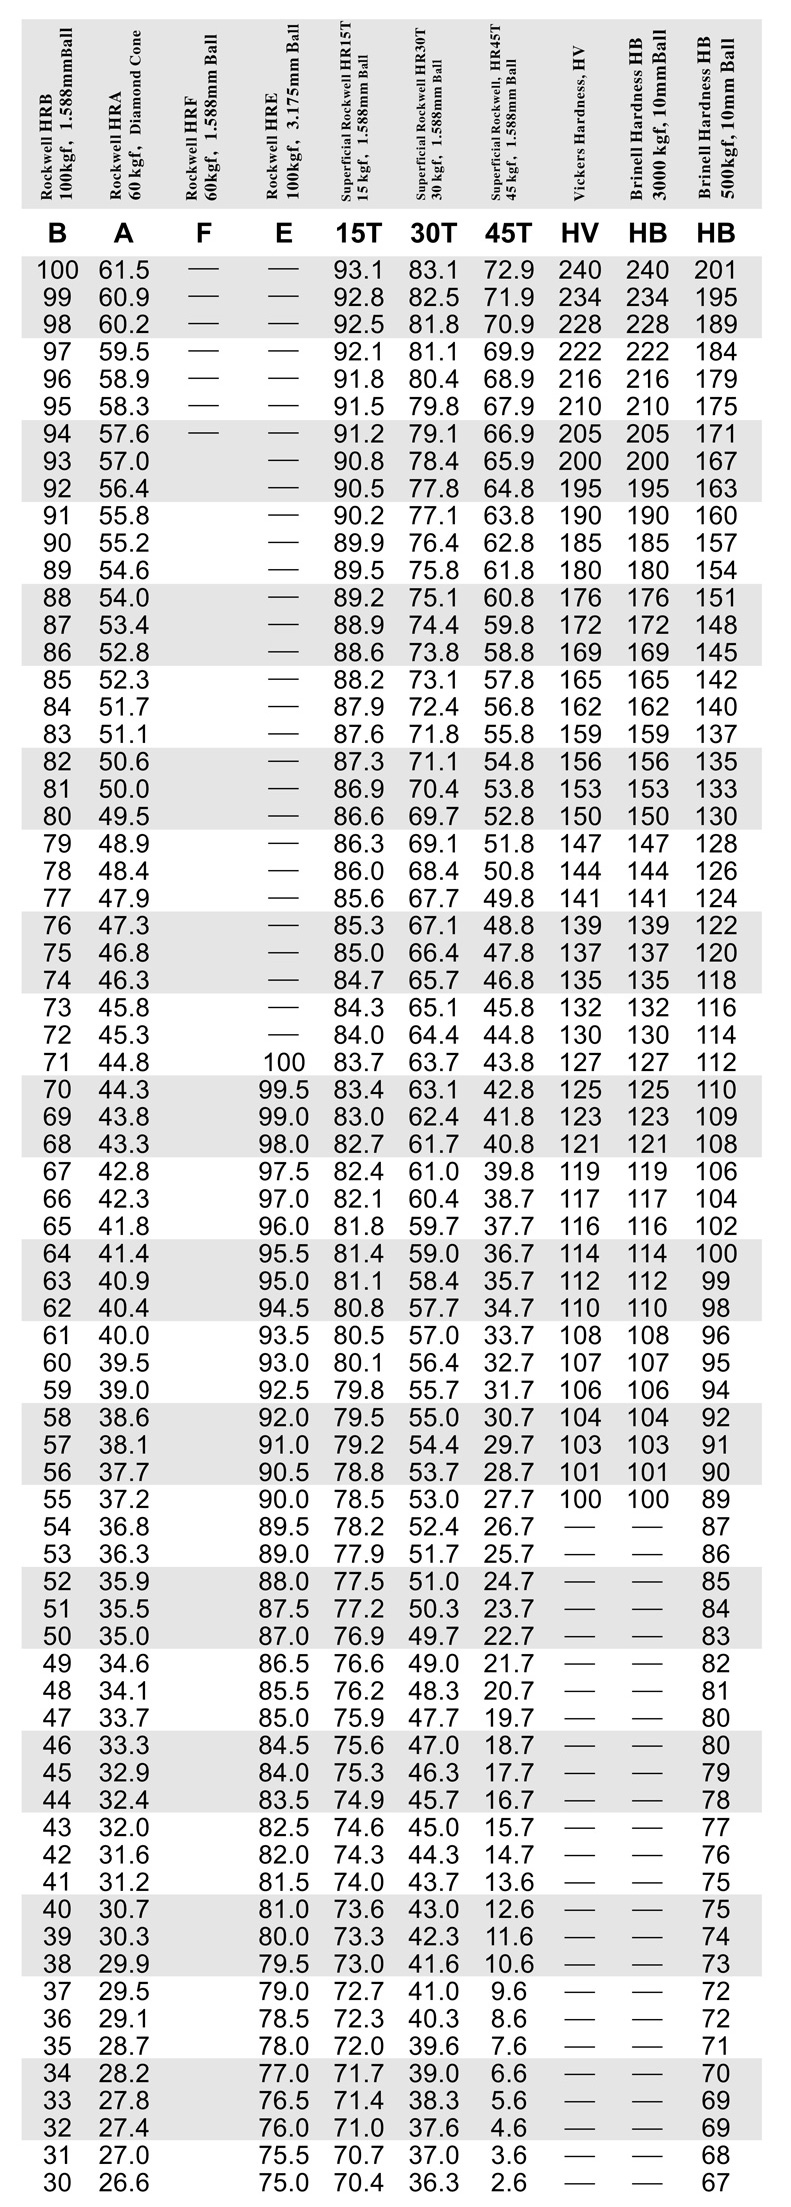 Leeb Hardness Conversion Chart Topsimages